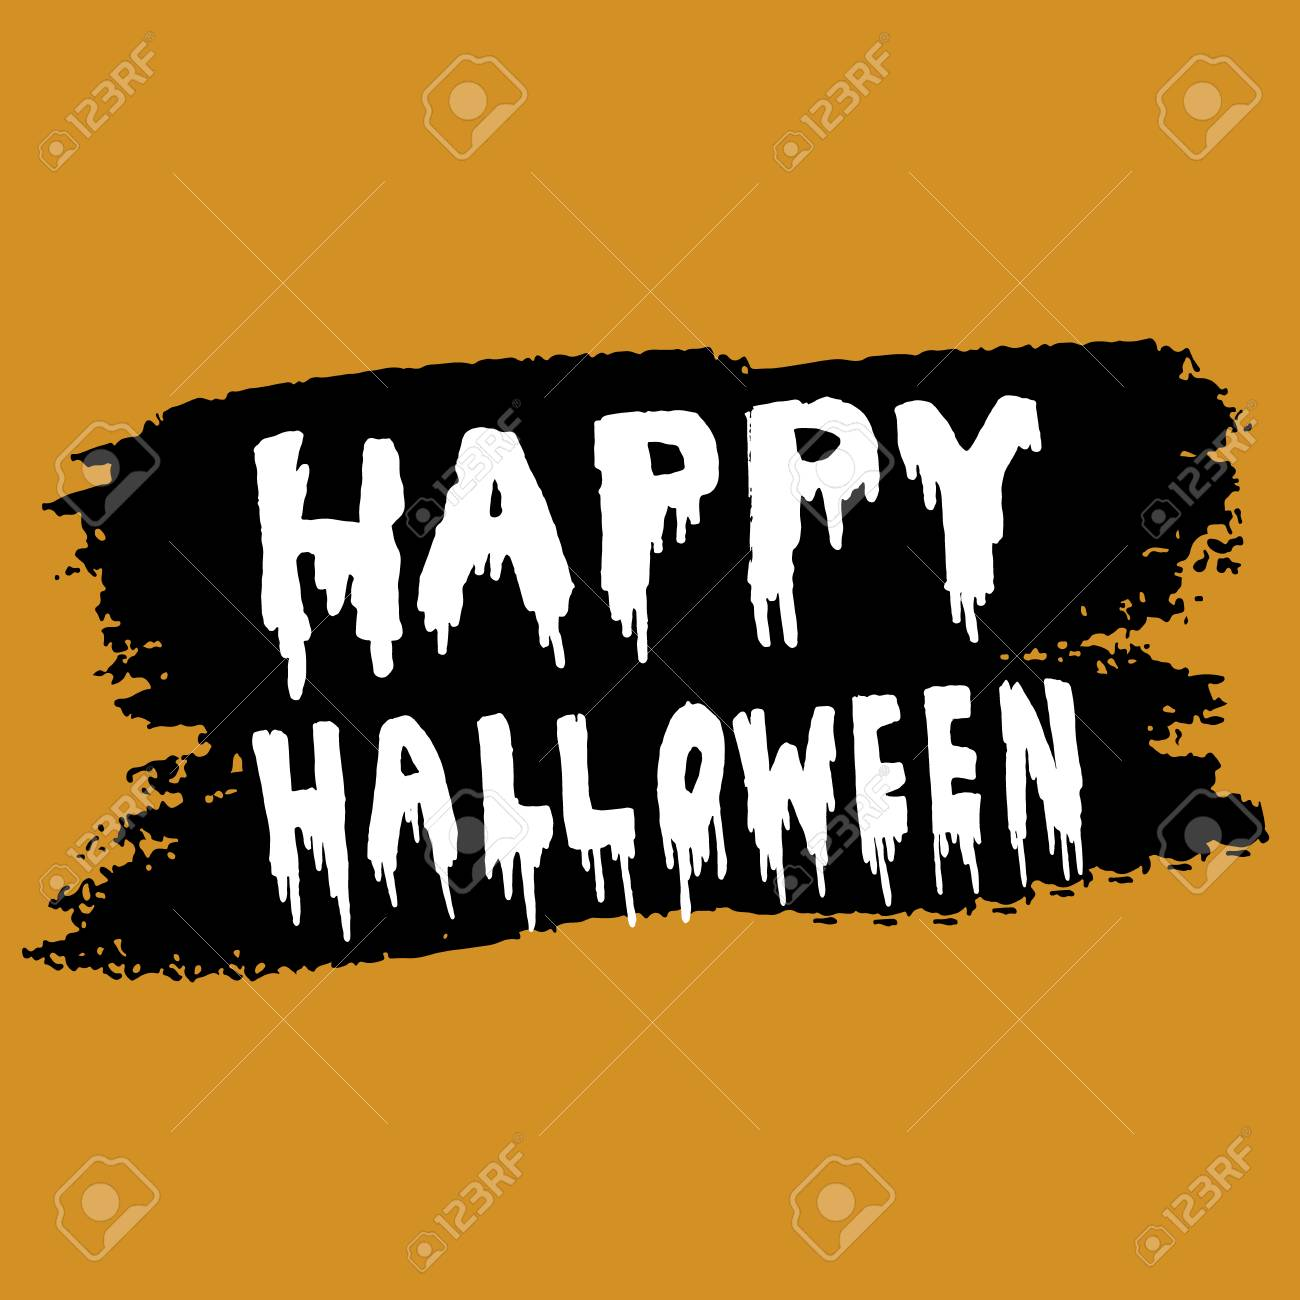 Happy Halloween Calligraphy Halloween Banner Halloween Lettering Royalty Free Cliparts Vectors And Stock Illustration Image 63625318